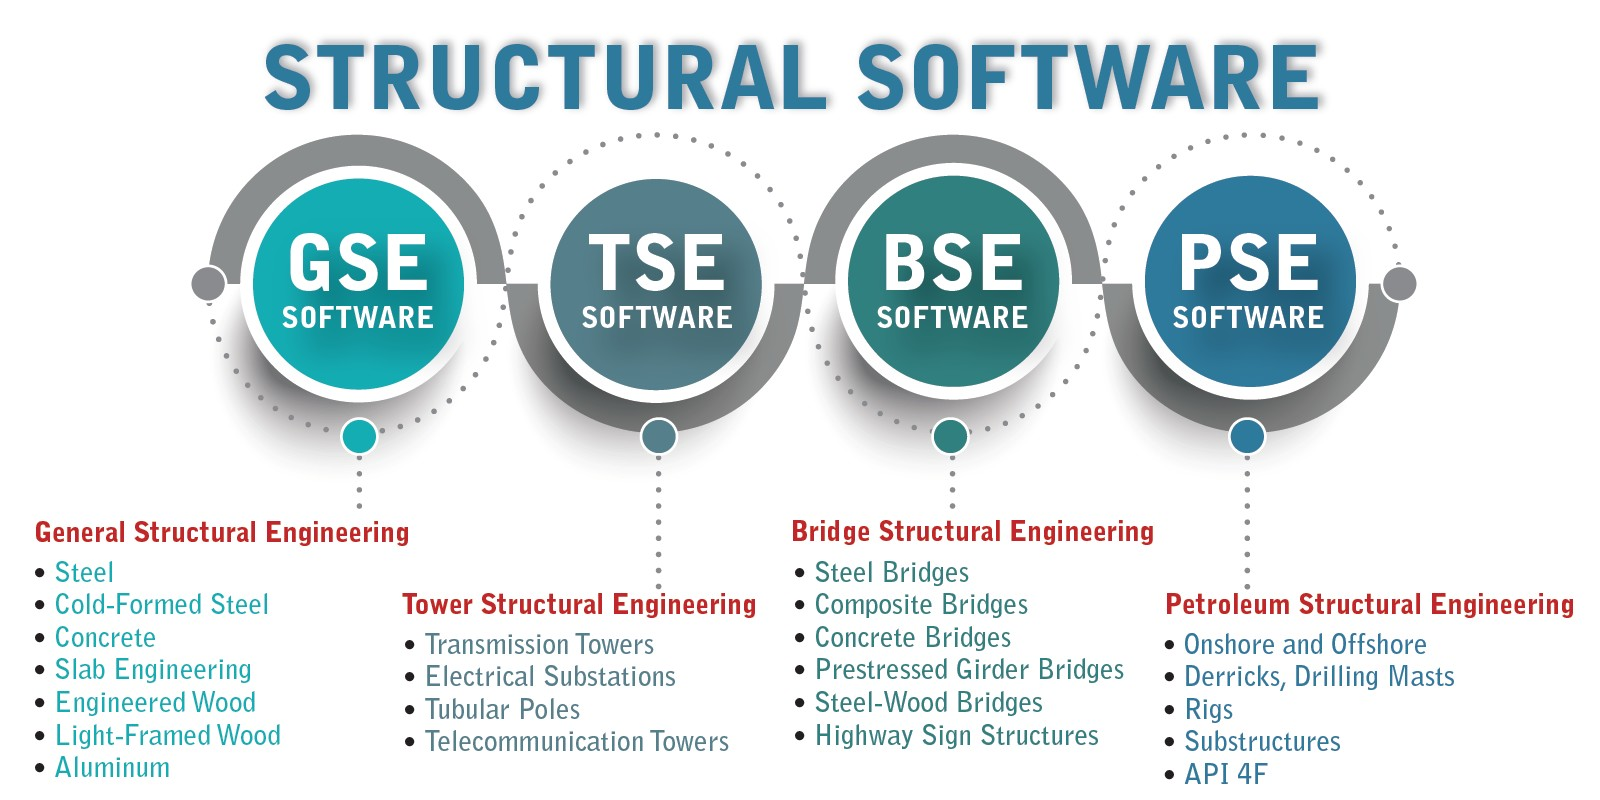 STRUCTURAL SOFTWARE APPLICATIONS